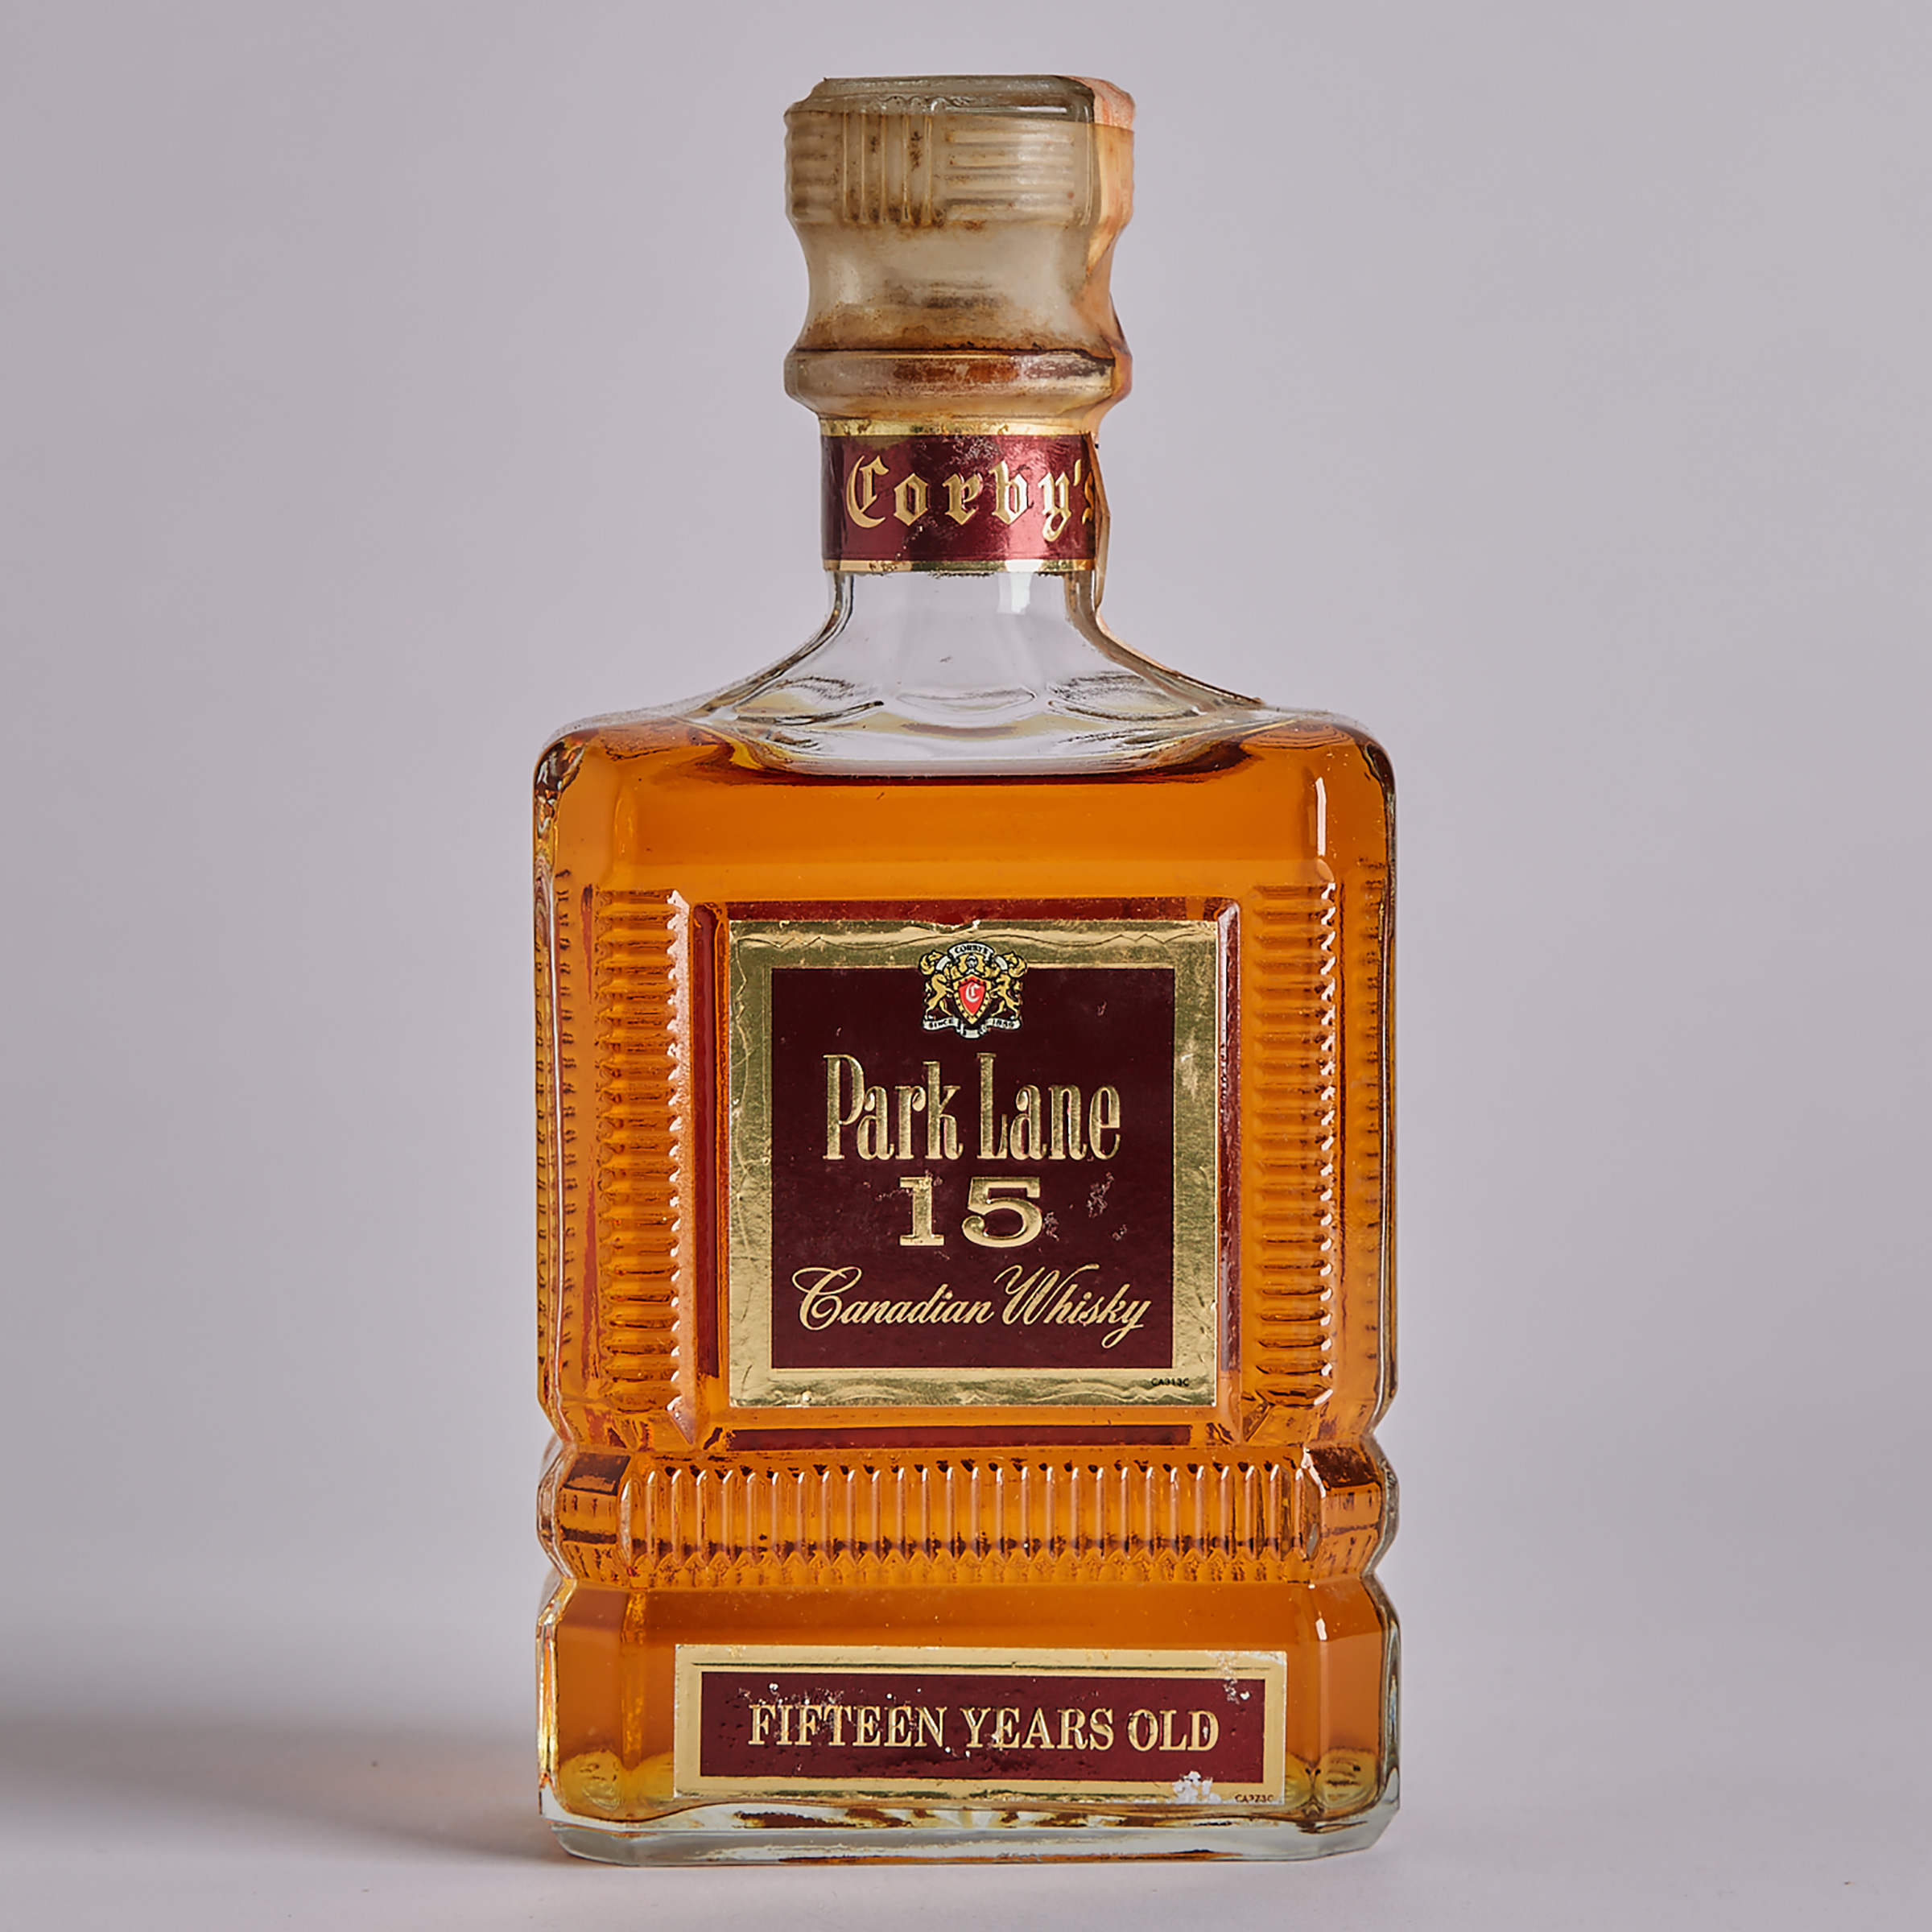 CORBY'S PARK LANE CANADIAN WHISKY 15 YEARS (ONE 710 ML)